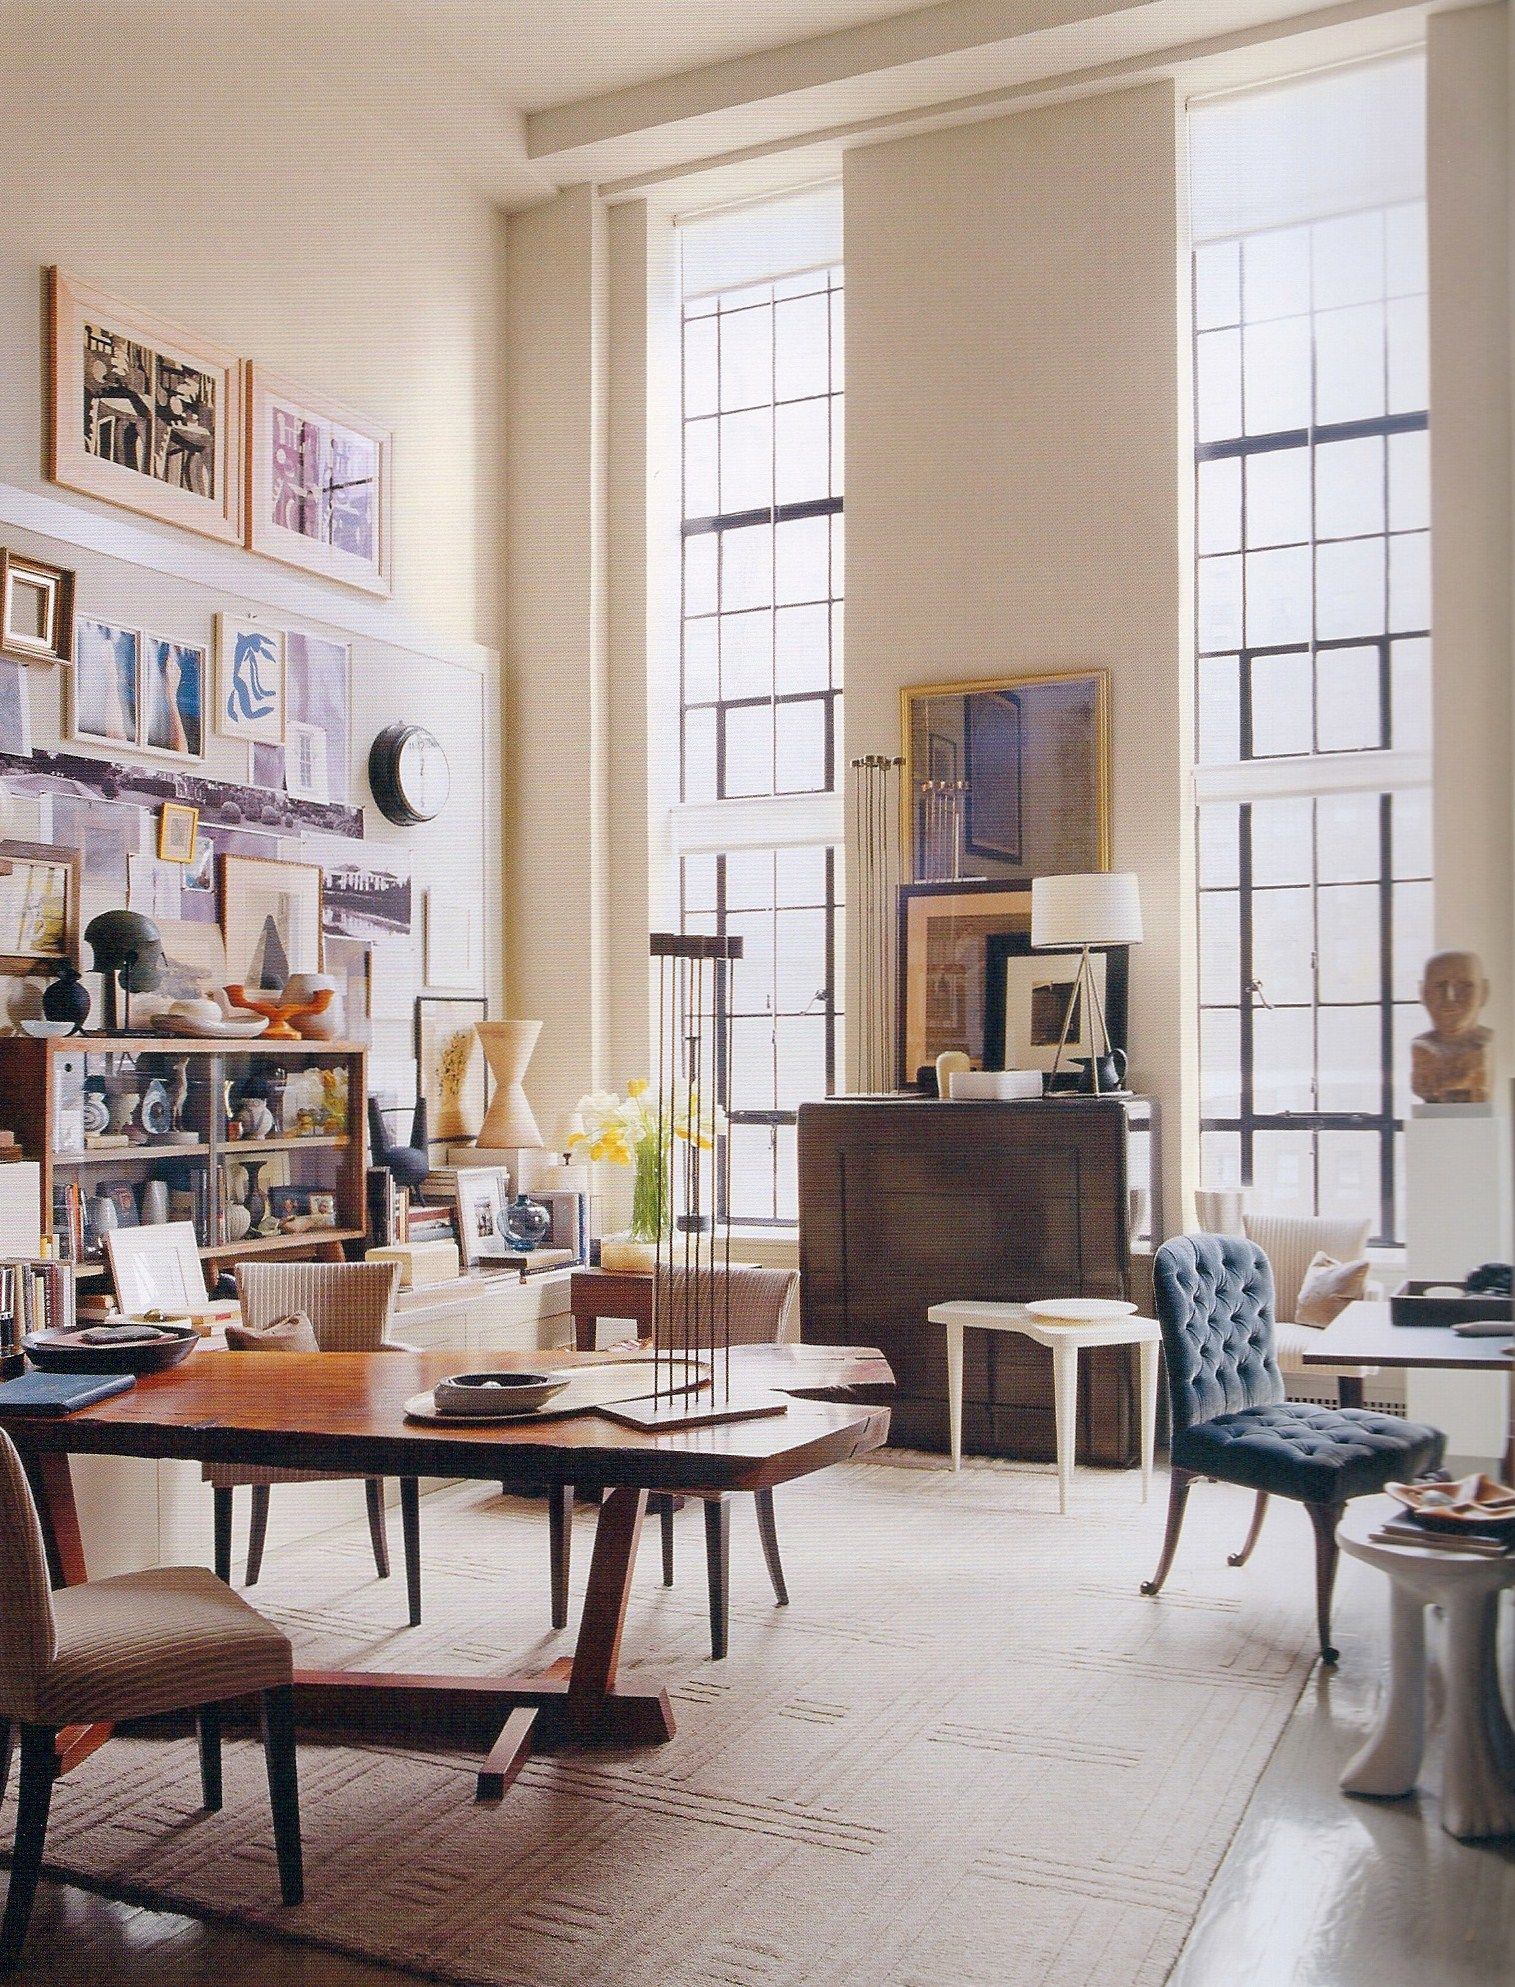 Peek Inside The Offices Of Some of Interior Design\'s Most Famous ...